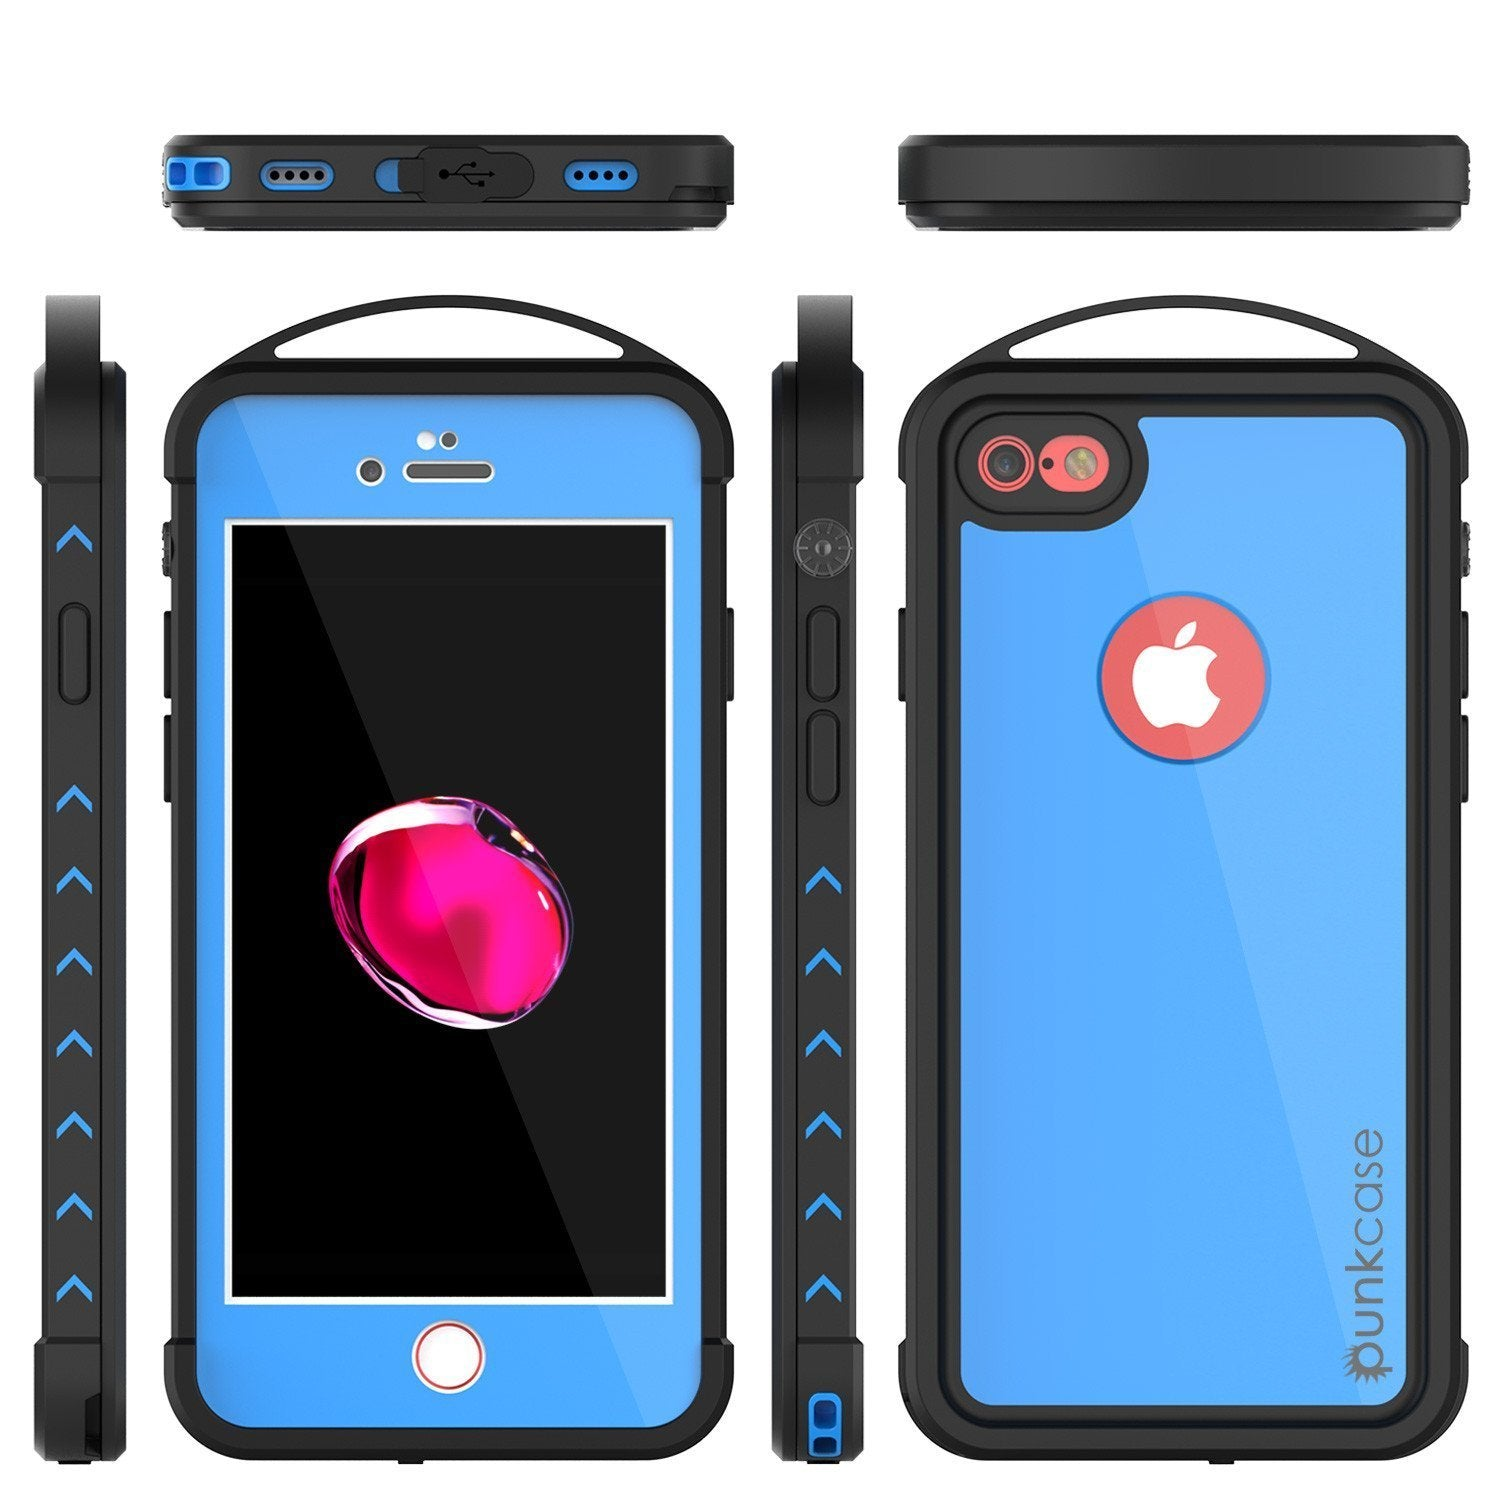 iPhone 8 Waterproof Case, Punkcase ALPINE Series, Light Blue | Heavy Duty Armor Cover